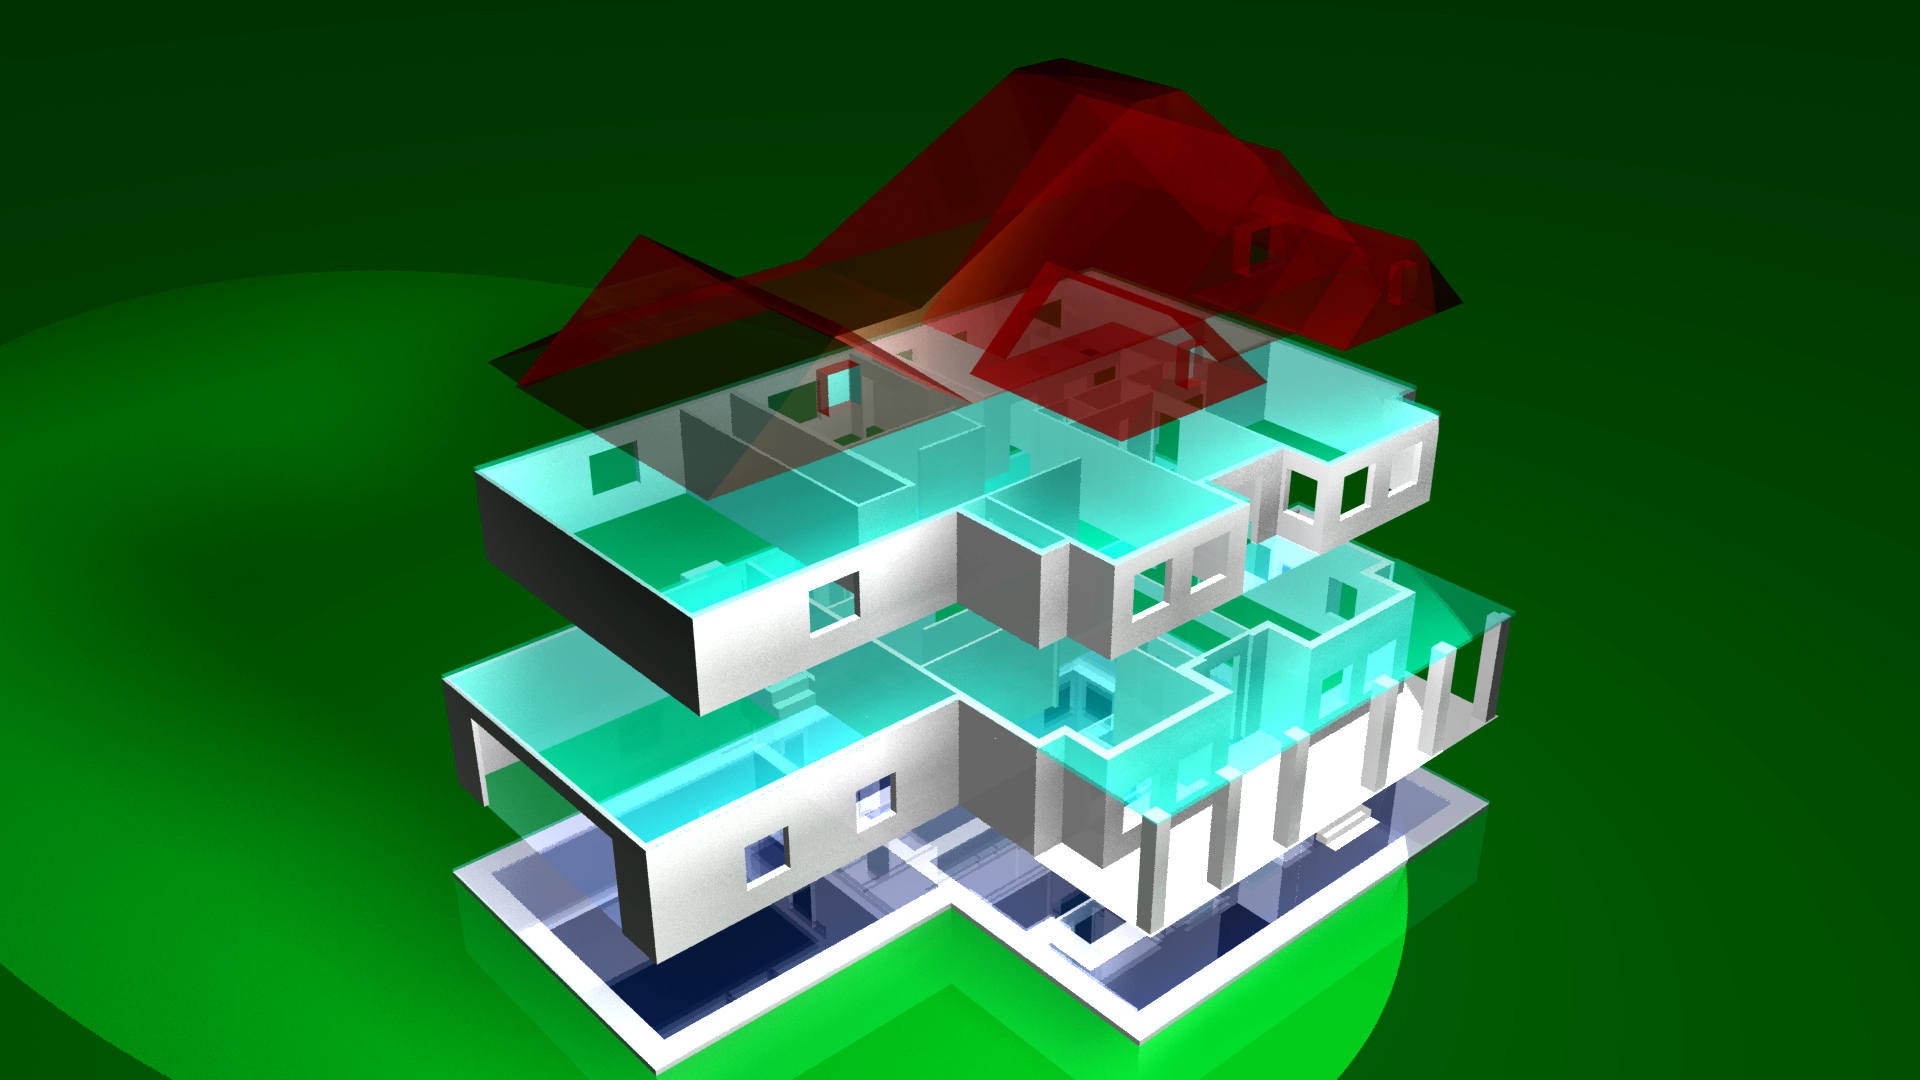 D Printing of House Plans from The Plan CollectionDigital model of house plan     D printing files